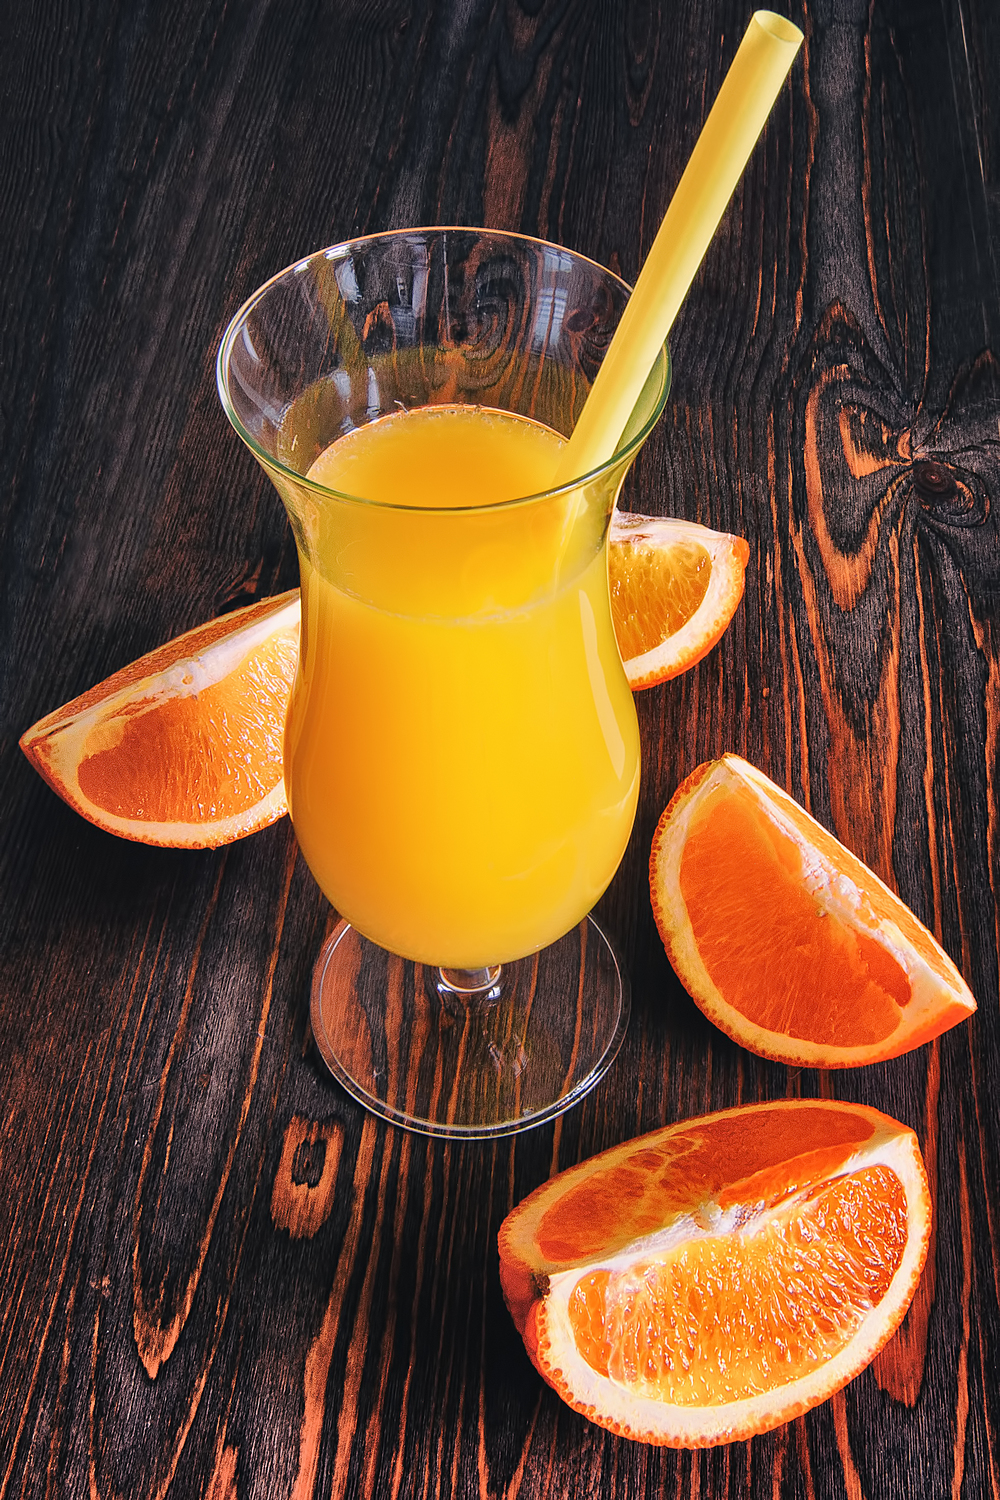 Stock image of orange juice and slices.